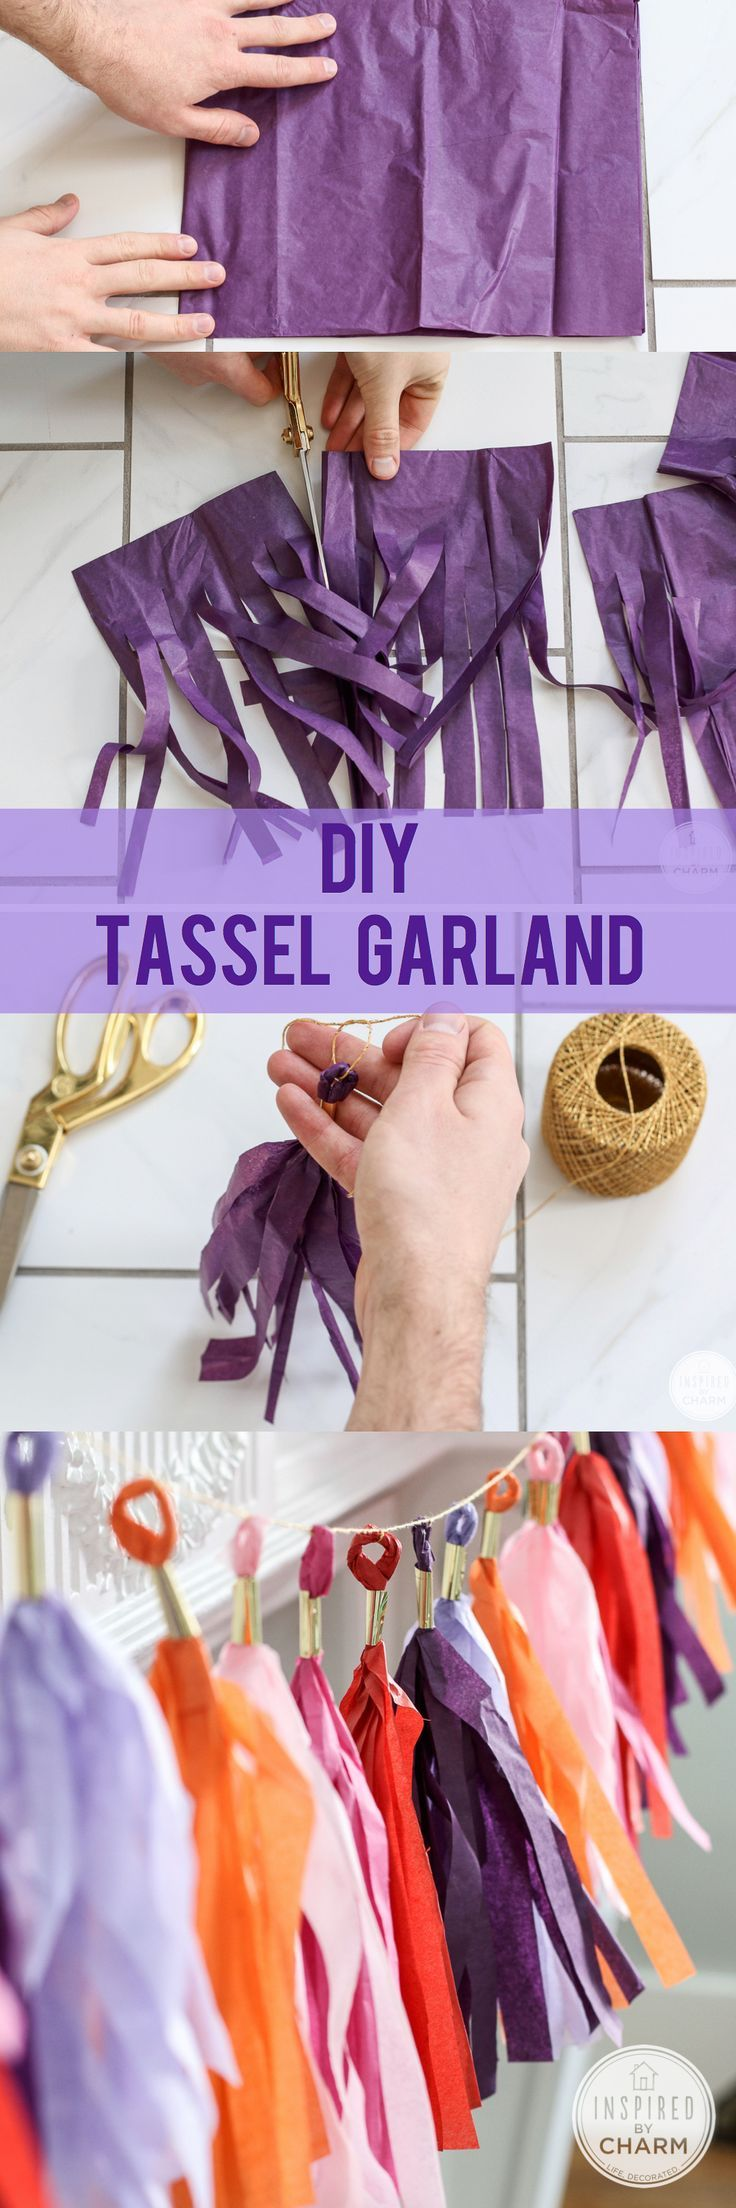 DIY tassel garland for a fun Graduation Party